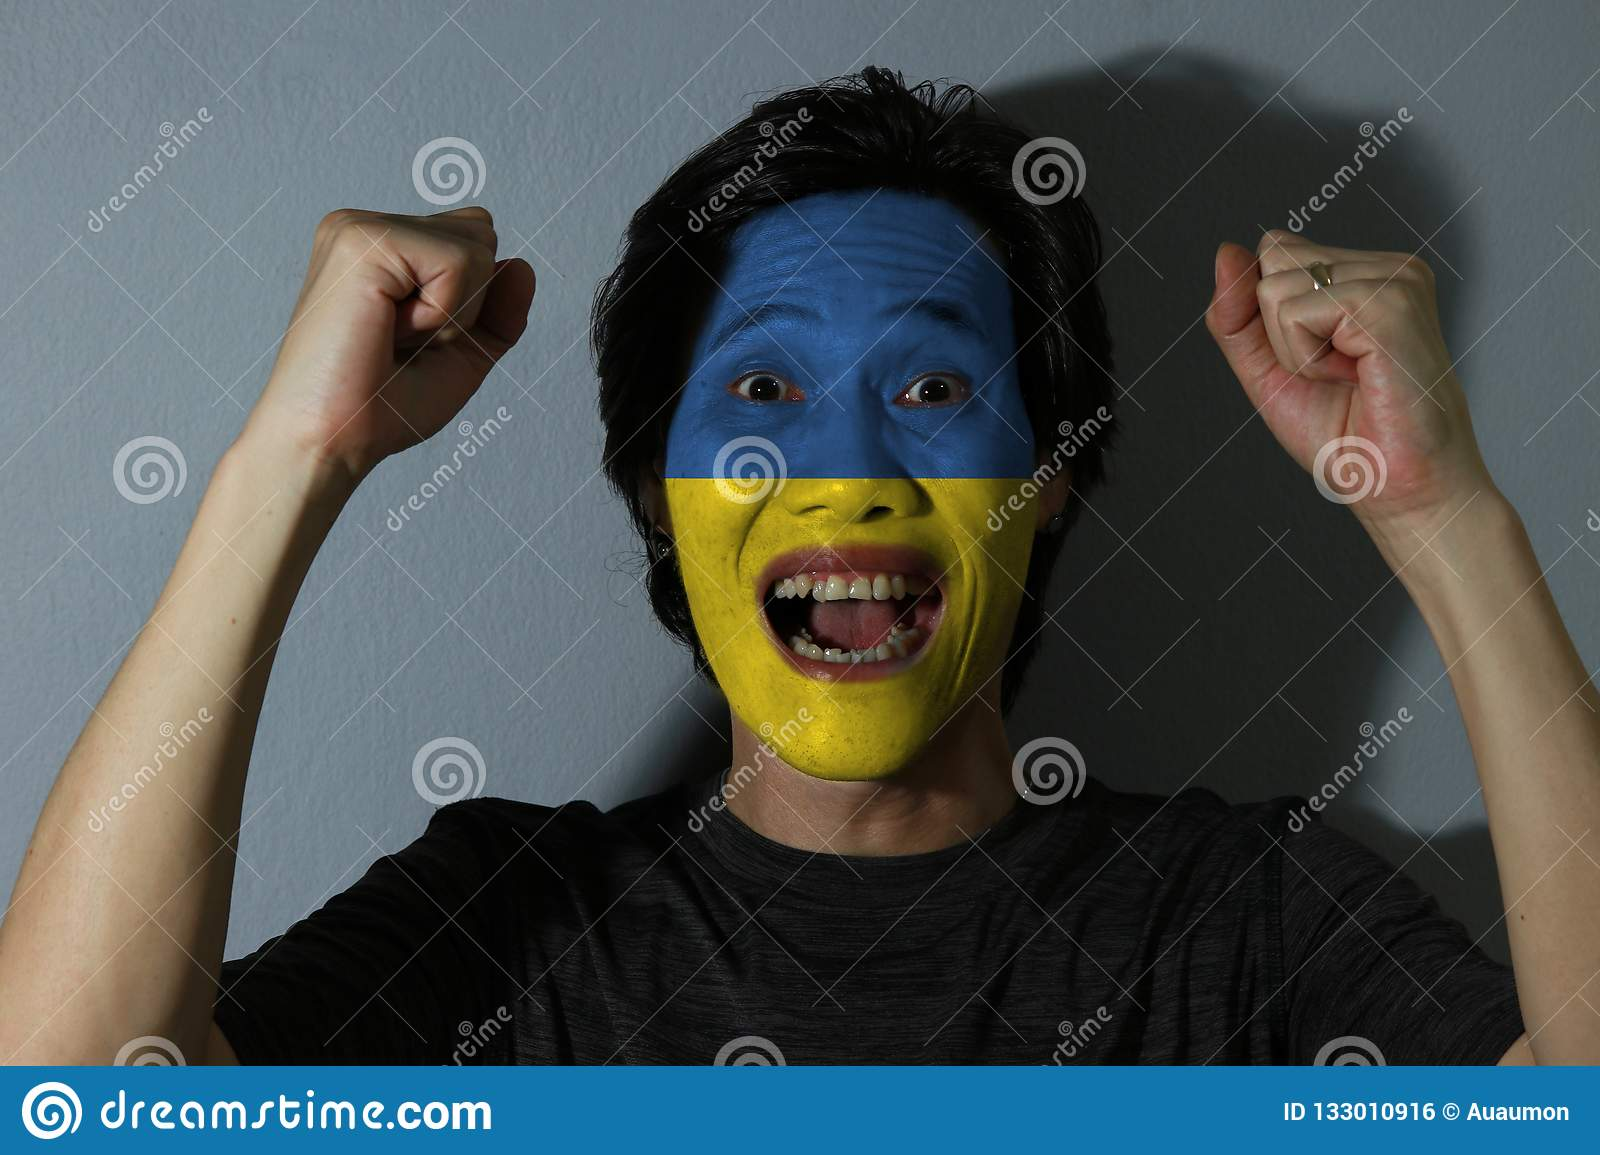 Cheerful portrait of a man with the flag of Ukraine painted on his face on grey background. The concept of sport or nationalism.